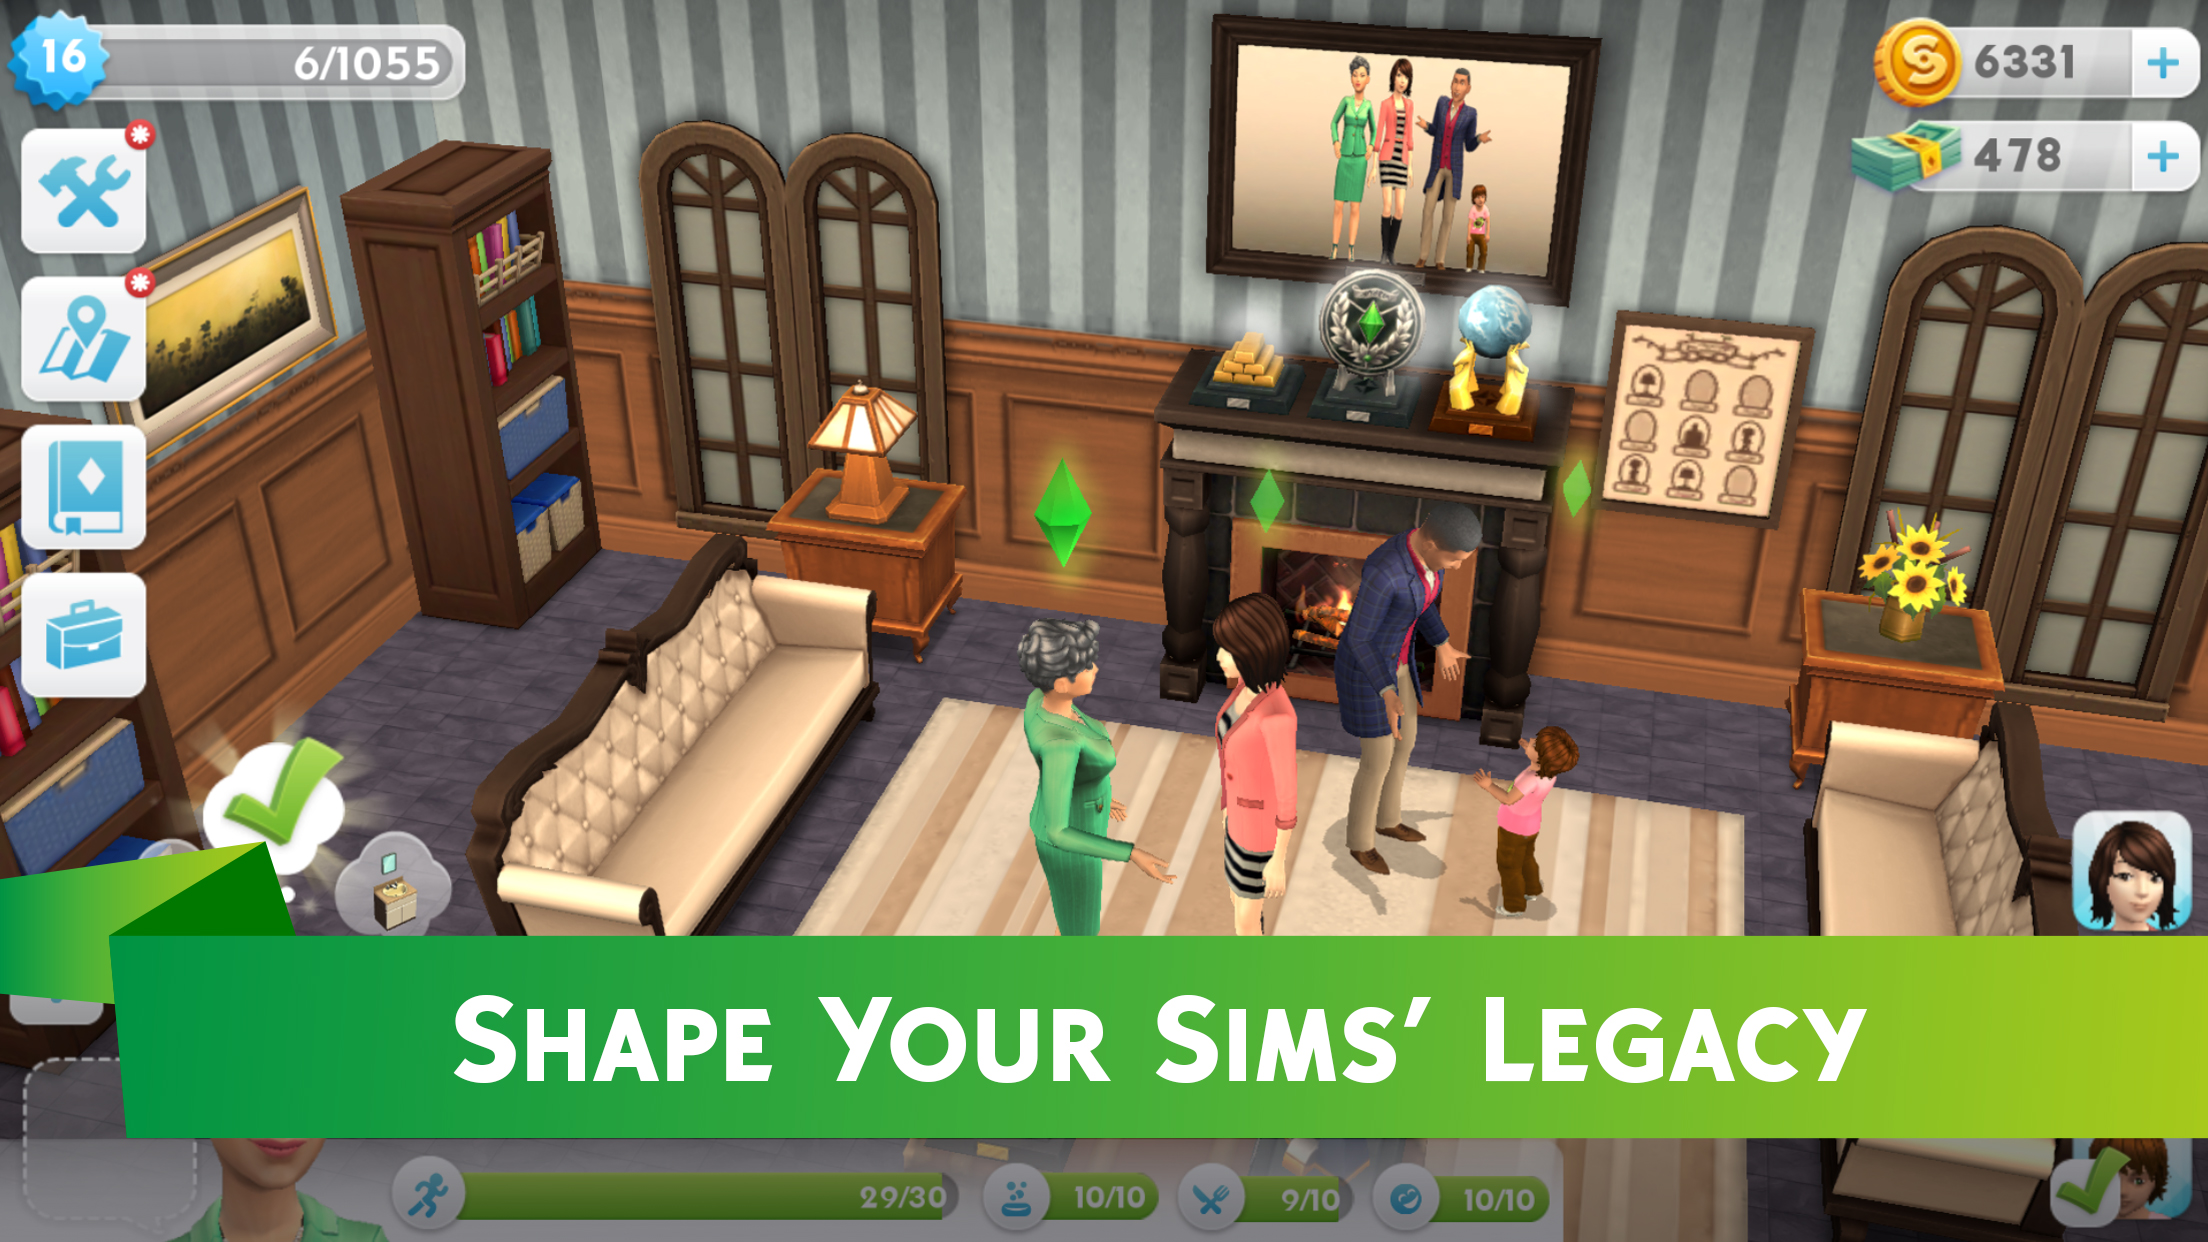 sims 3 download free ios